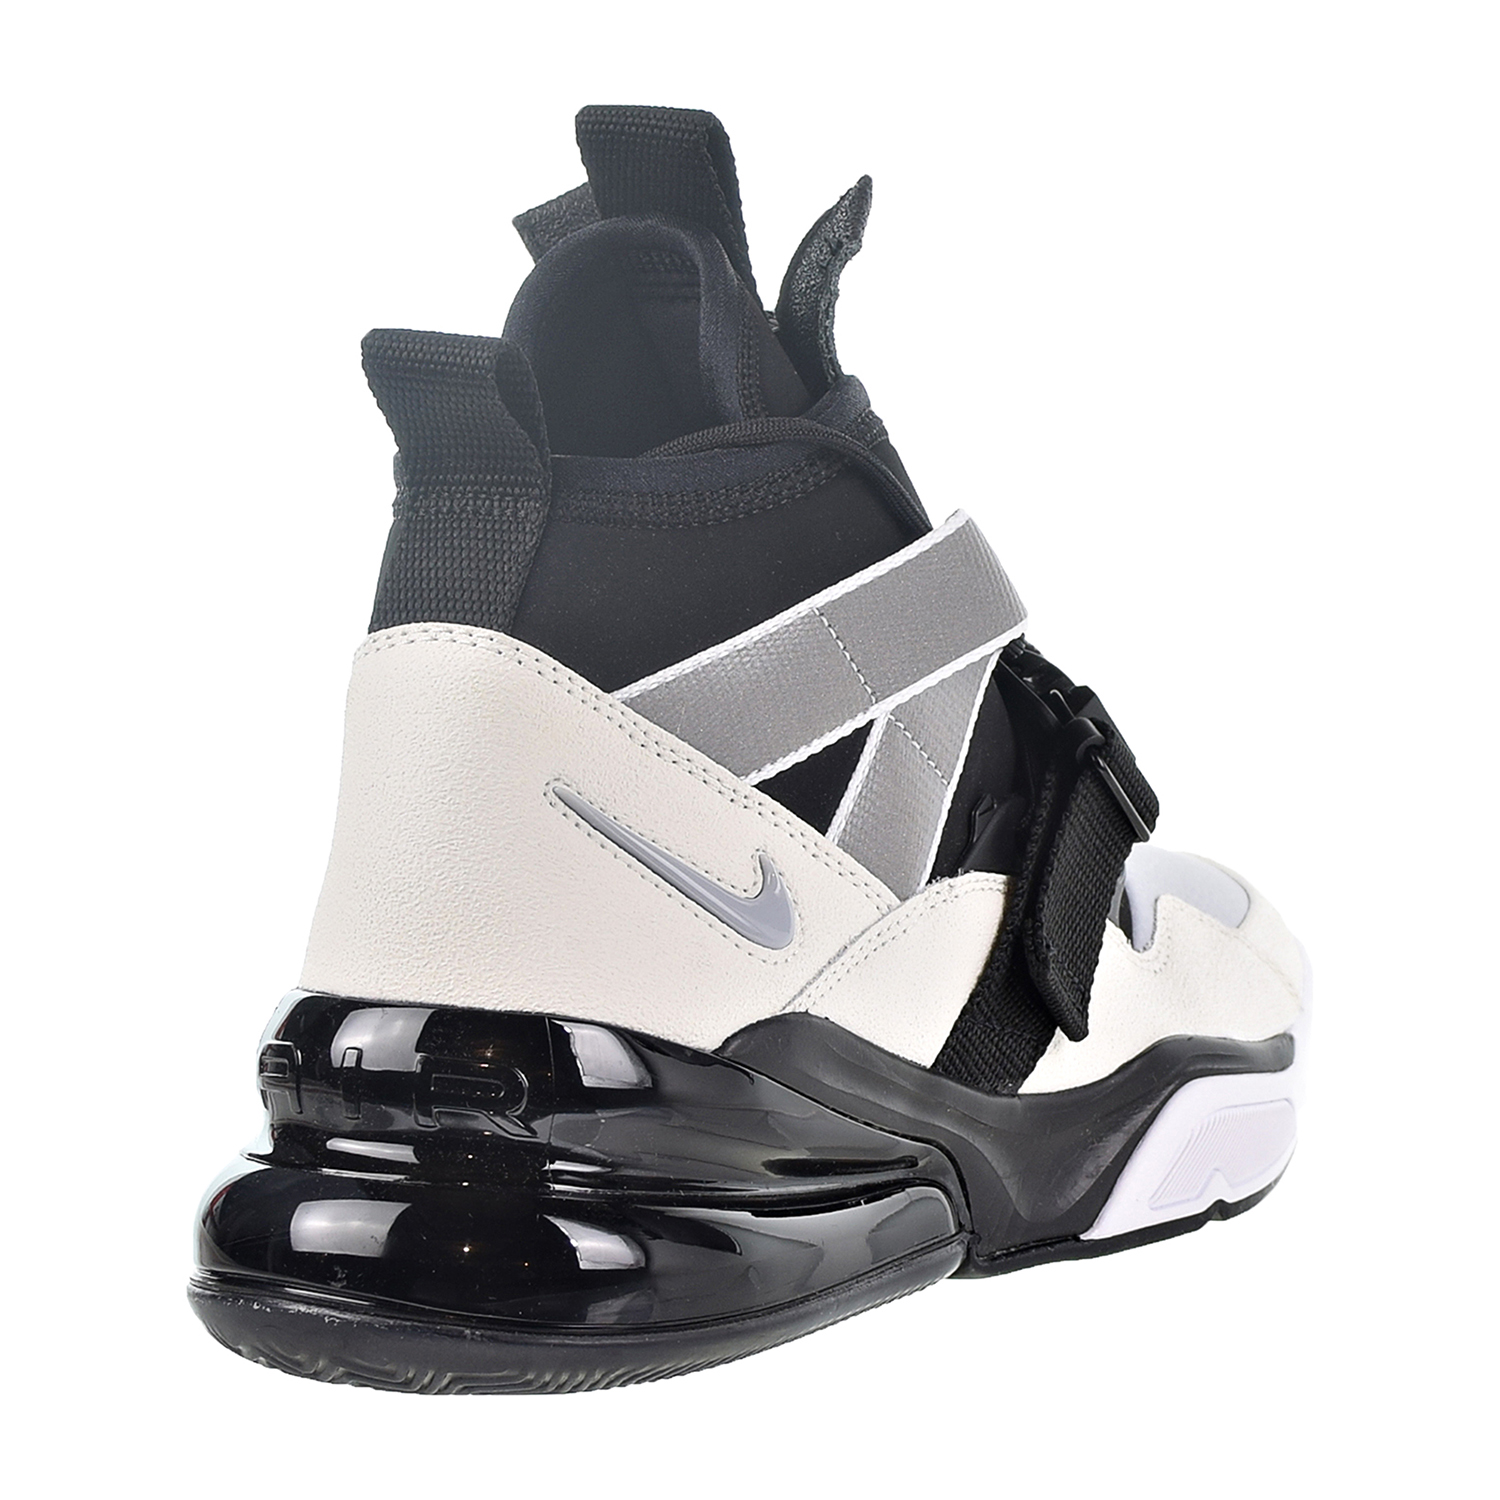 8f36181604 Details about Nike Air Force 270 Utility Men's Shoes Black/Sail/Wolf  Grey/White AQ0572-003